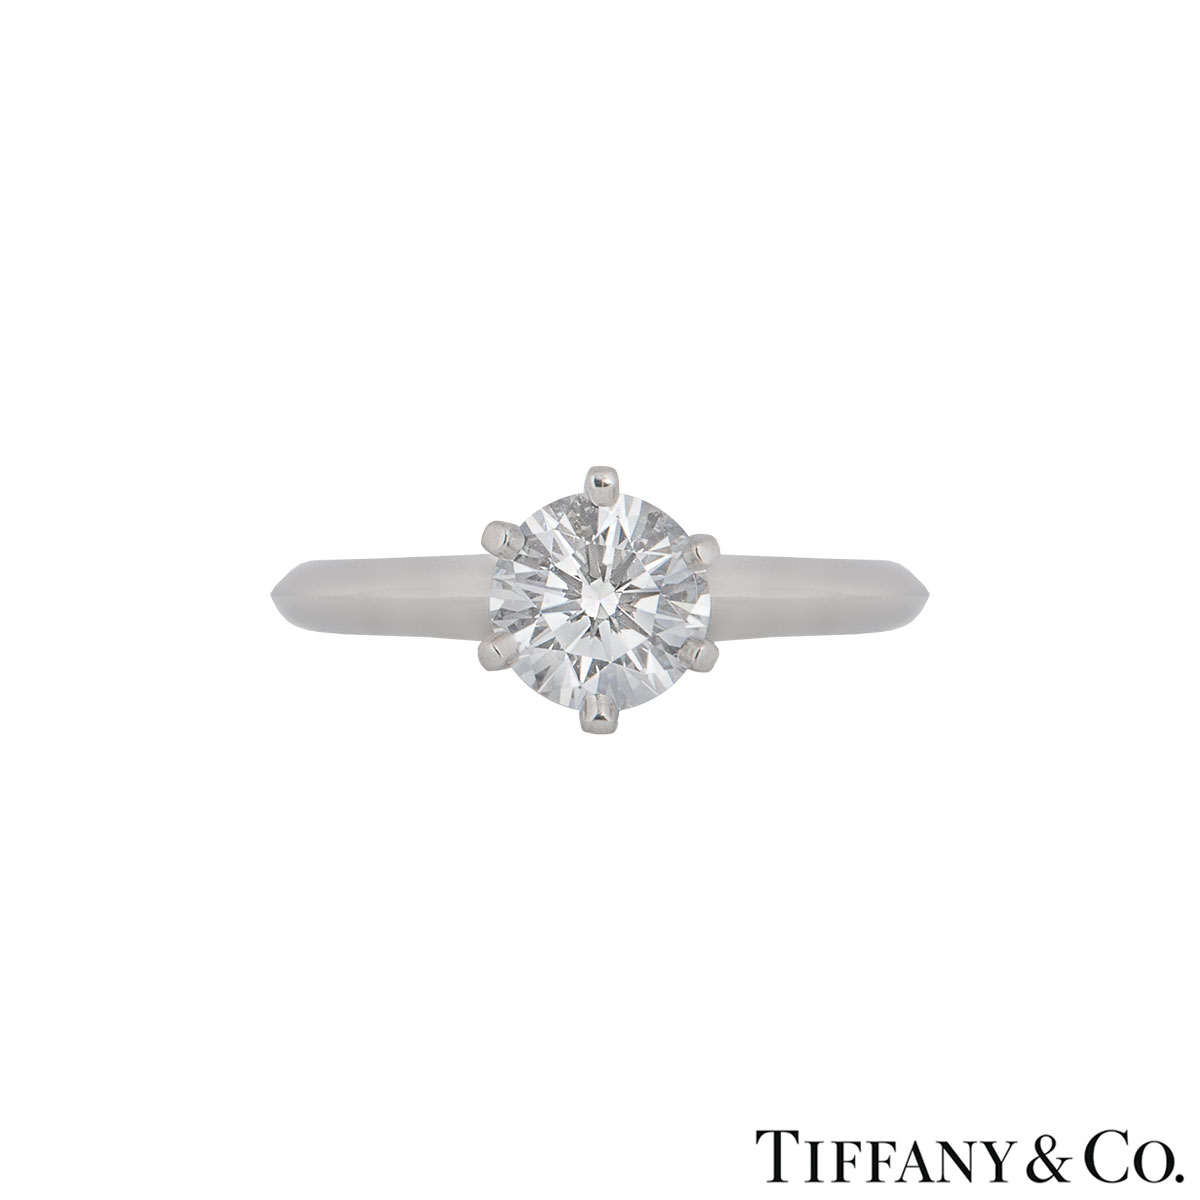 Tiffany & Co. Platinum Diamond Setting Ring 1.01ct E/VS1